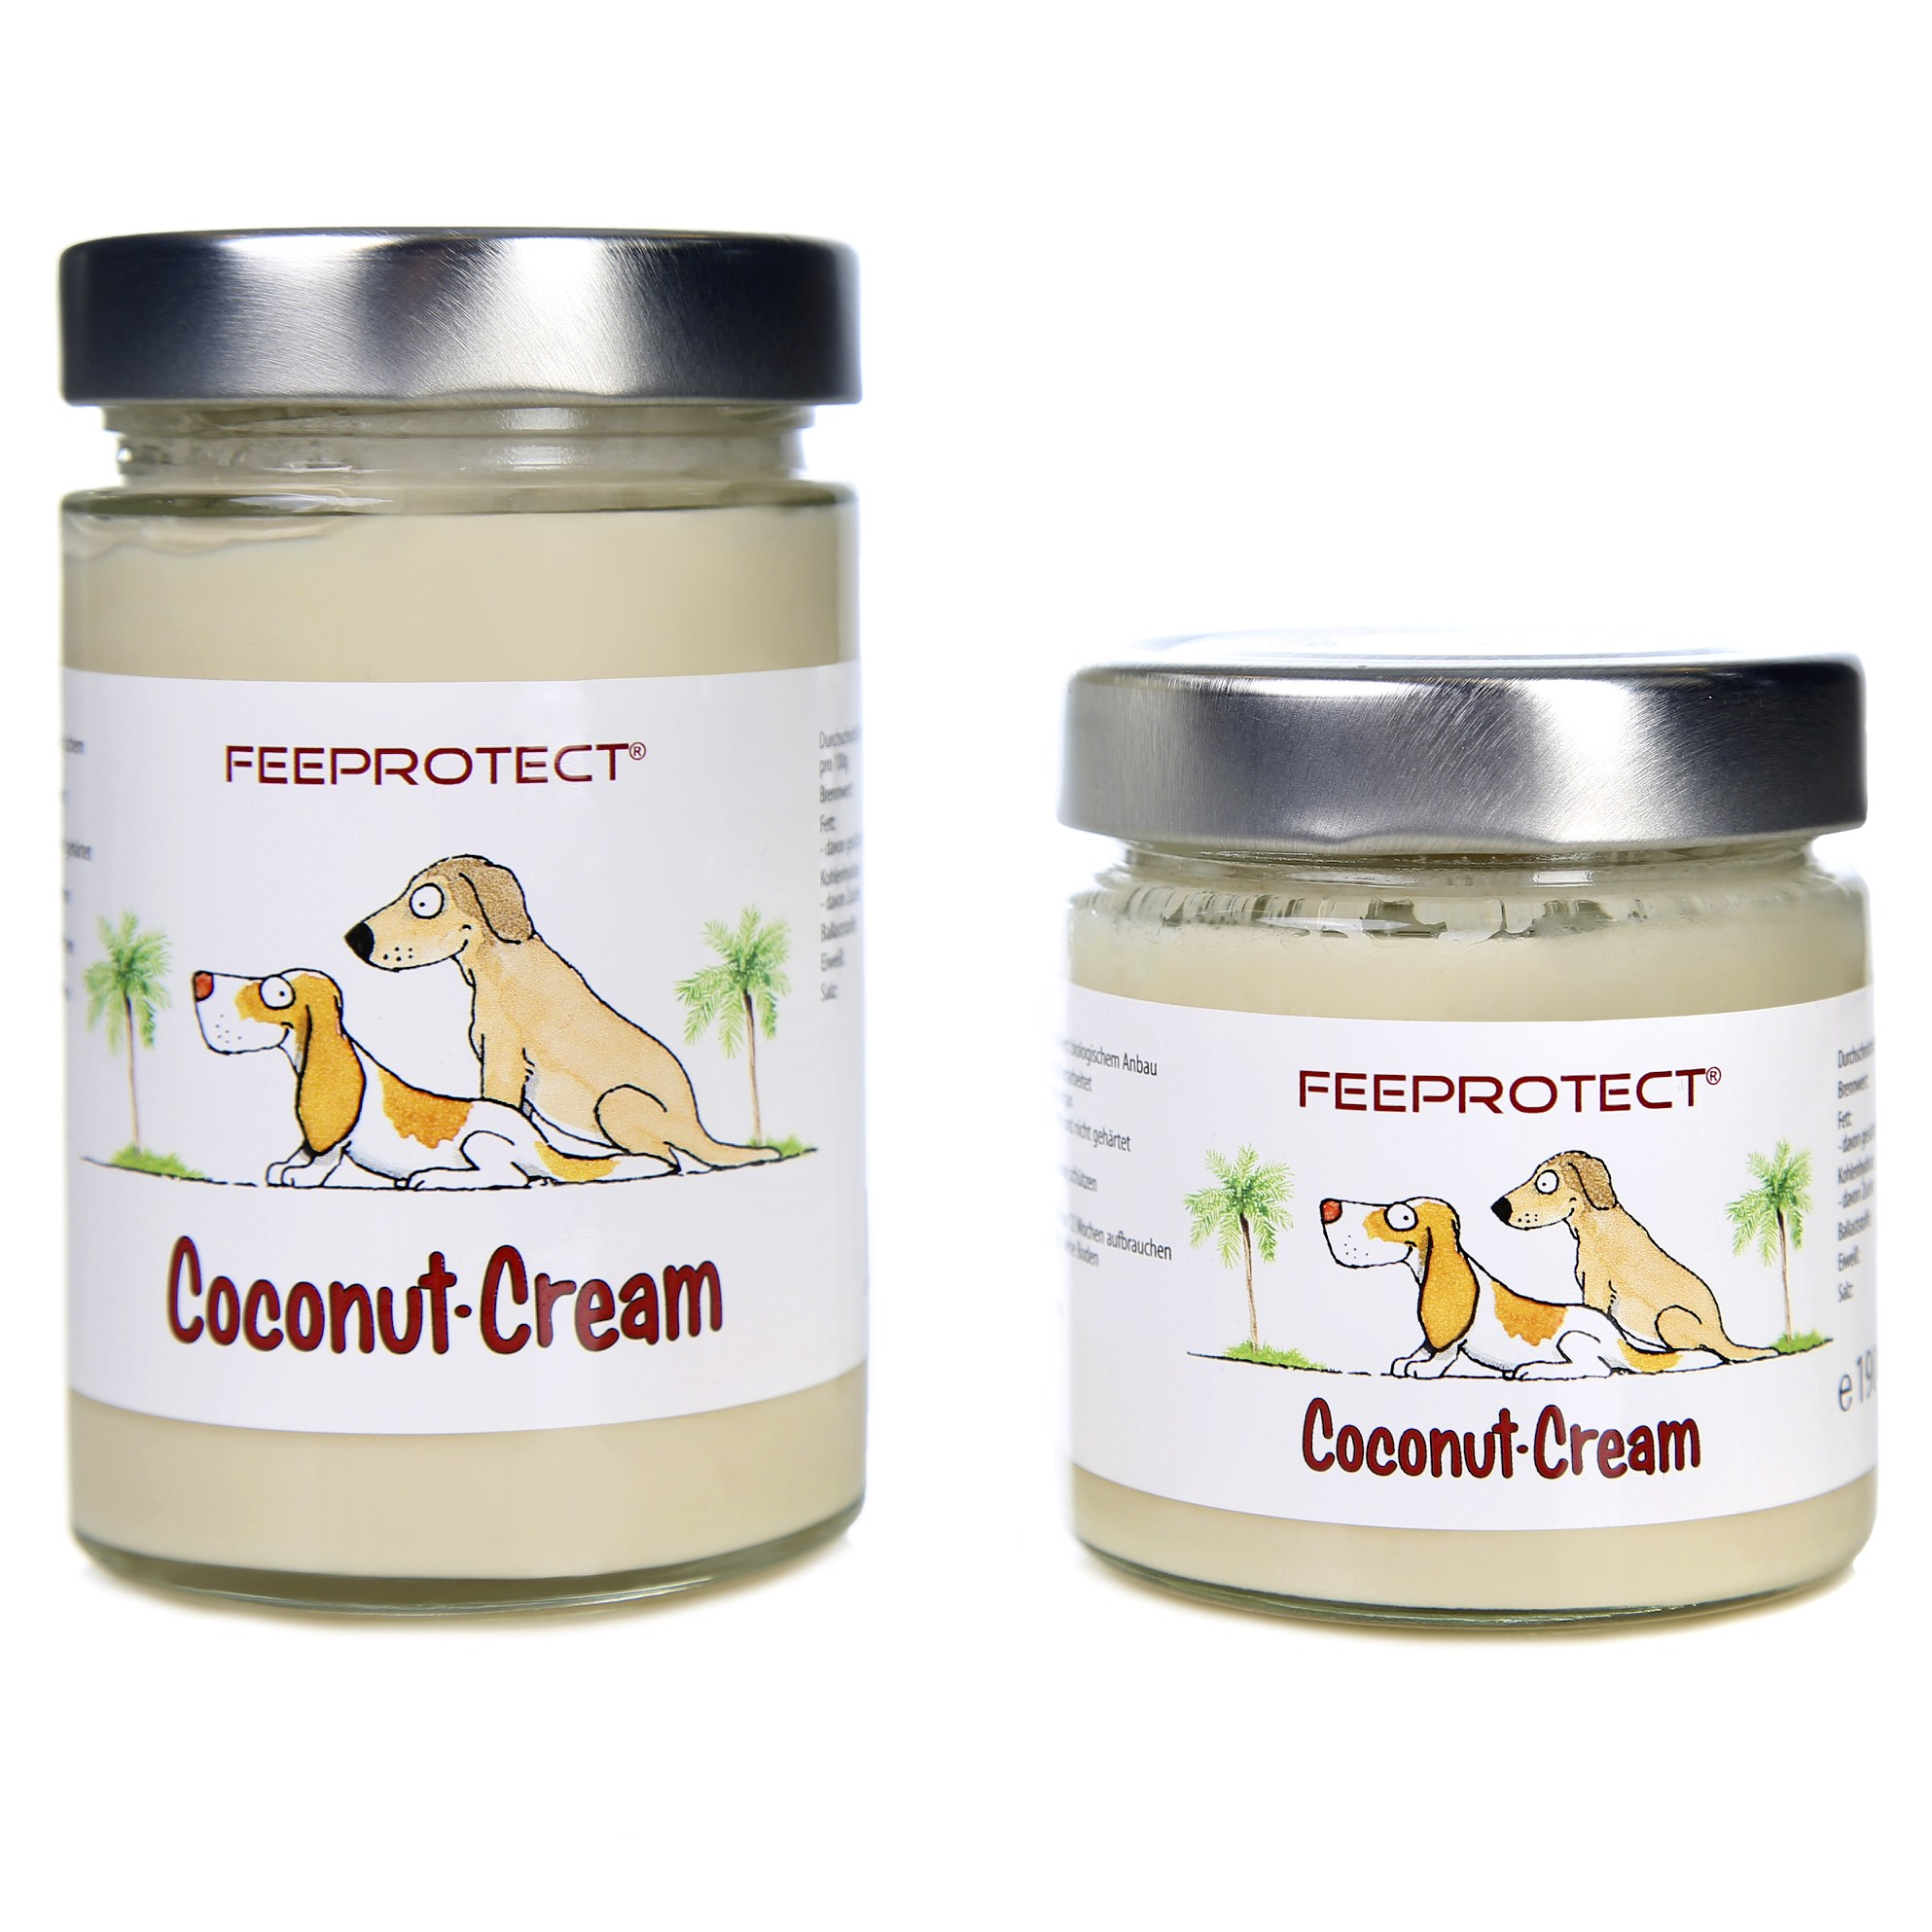 Feeprotect Coconut-Cream 300g